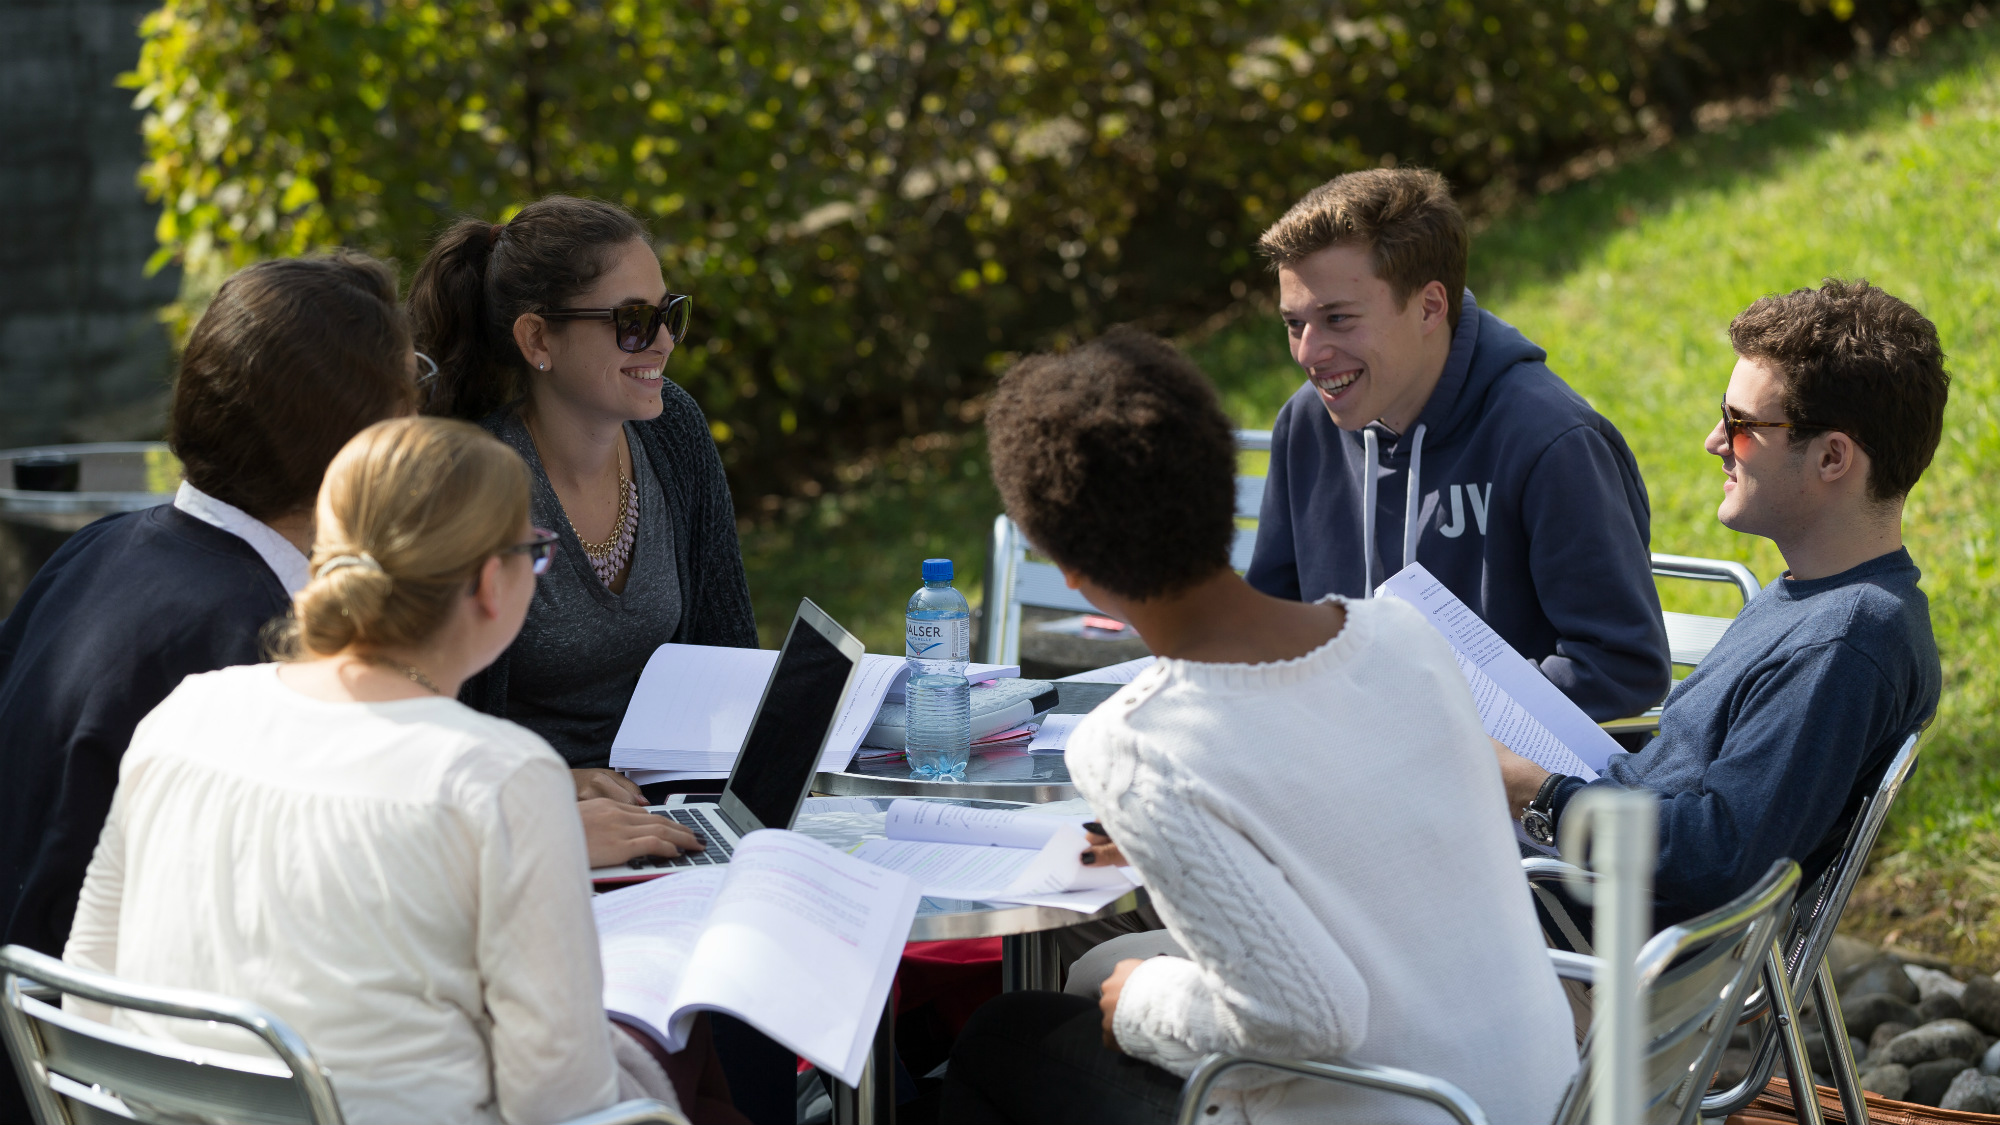 Students sitting in the sun between the Main Building and the Library Building at the University of St.Gallen (HSG)